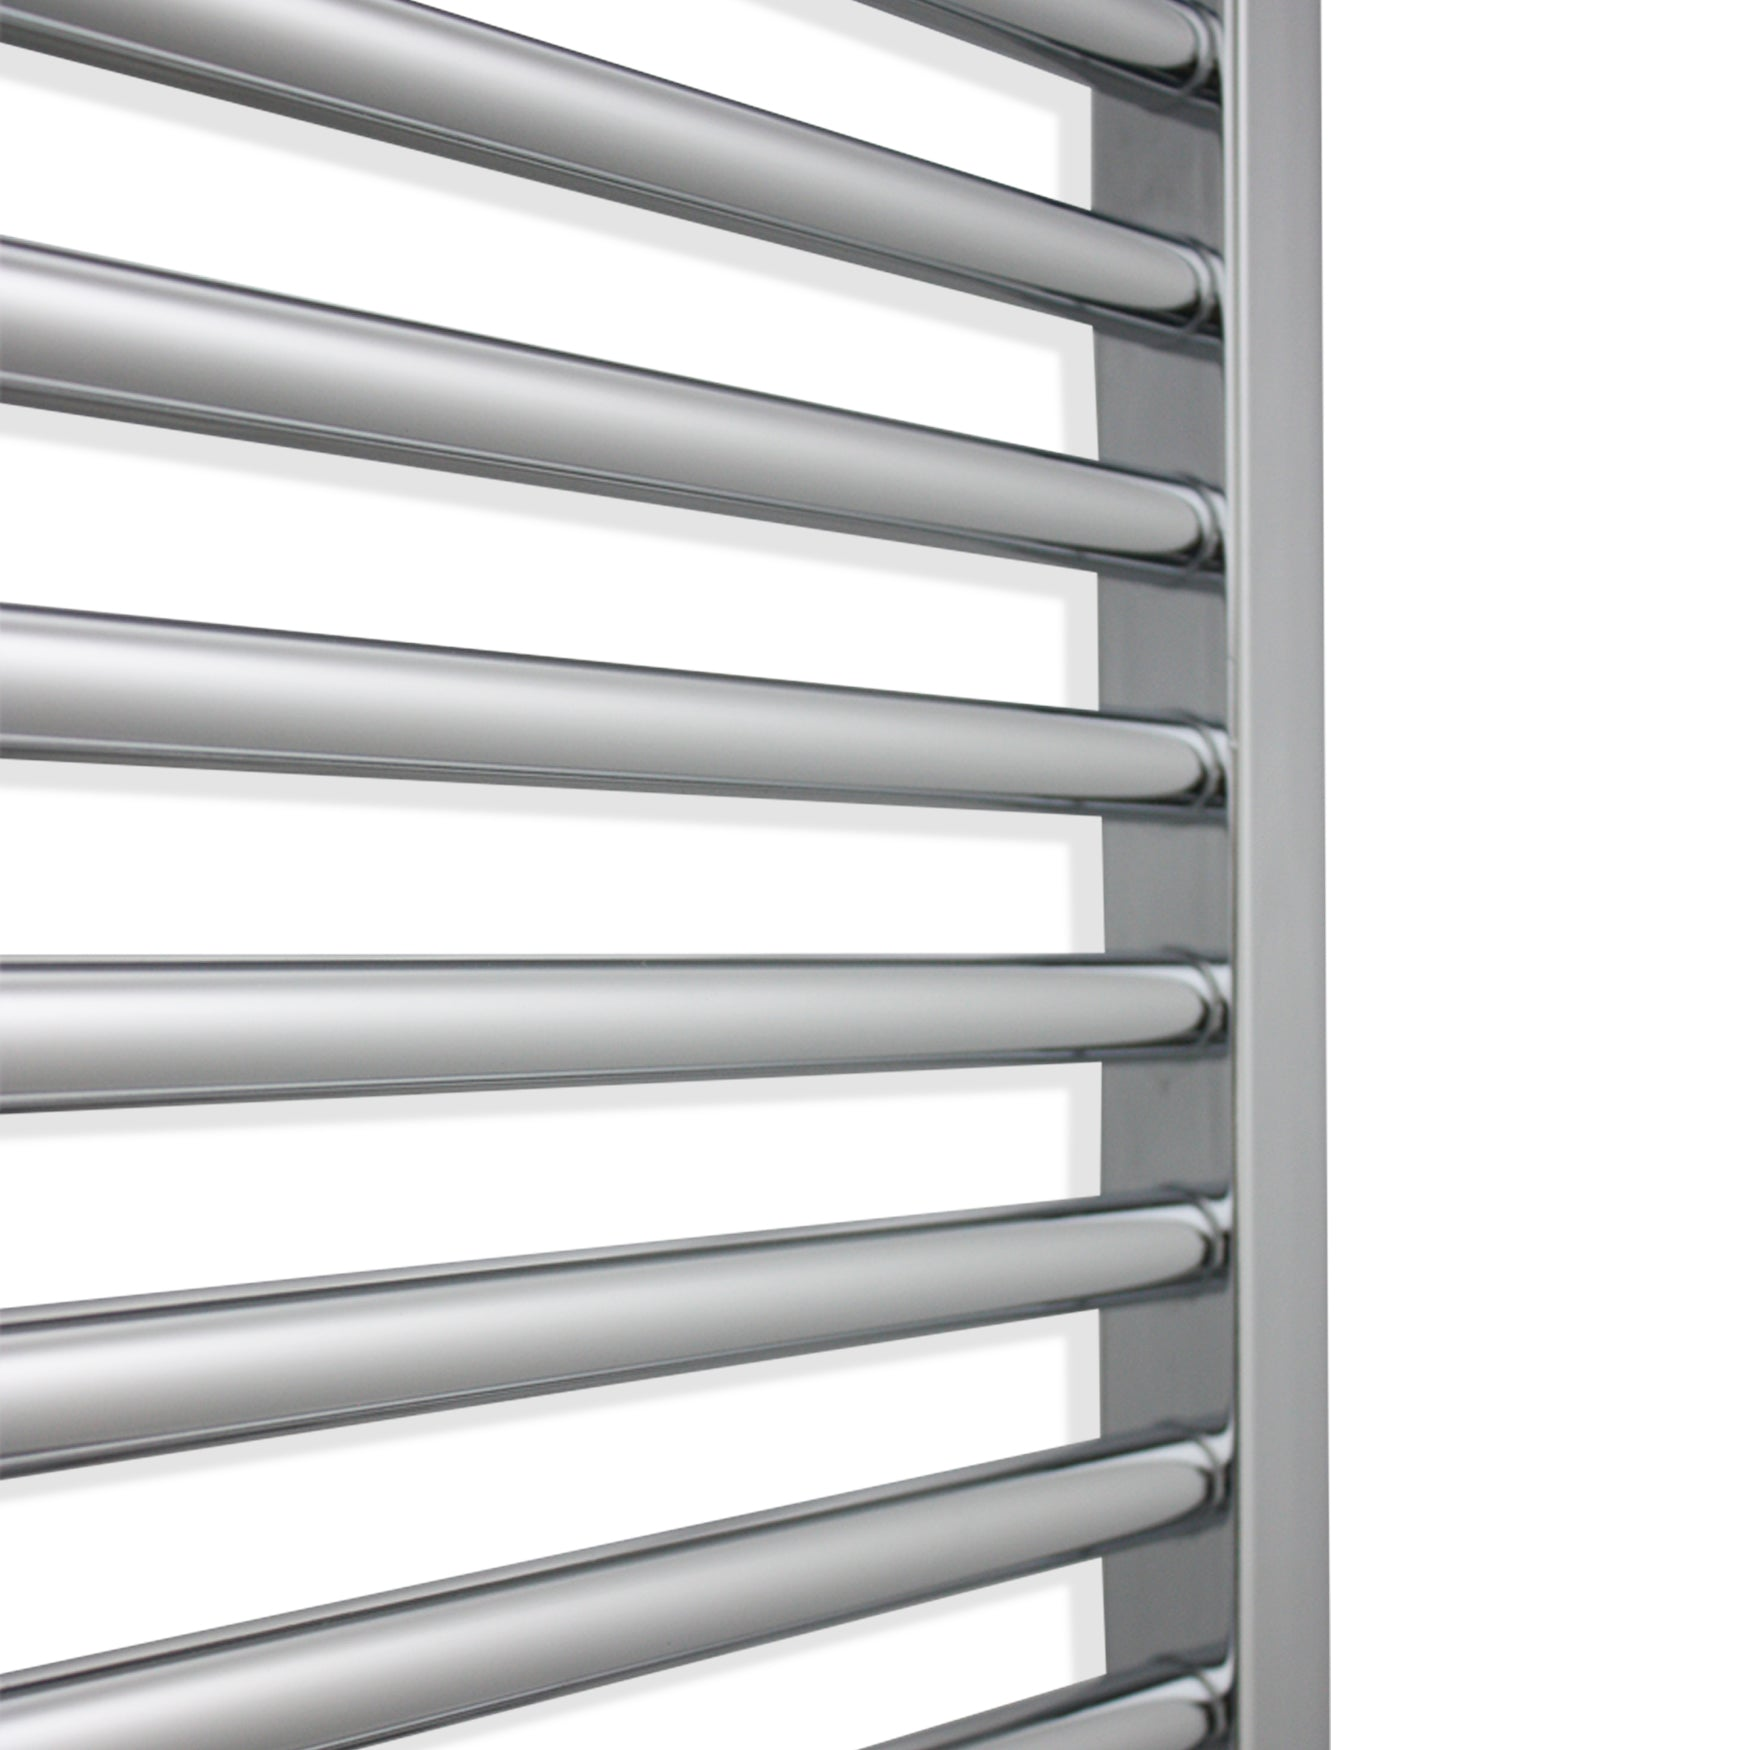 600mm Wide 1000mm High Curved Chrome Heated Towel Rail Radiator HTR